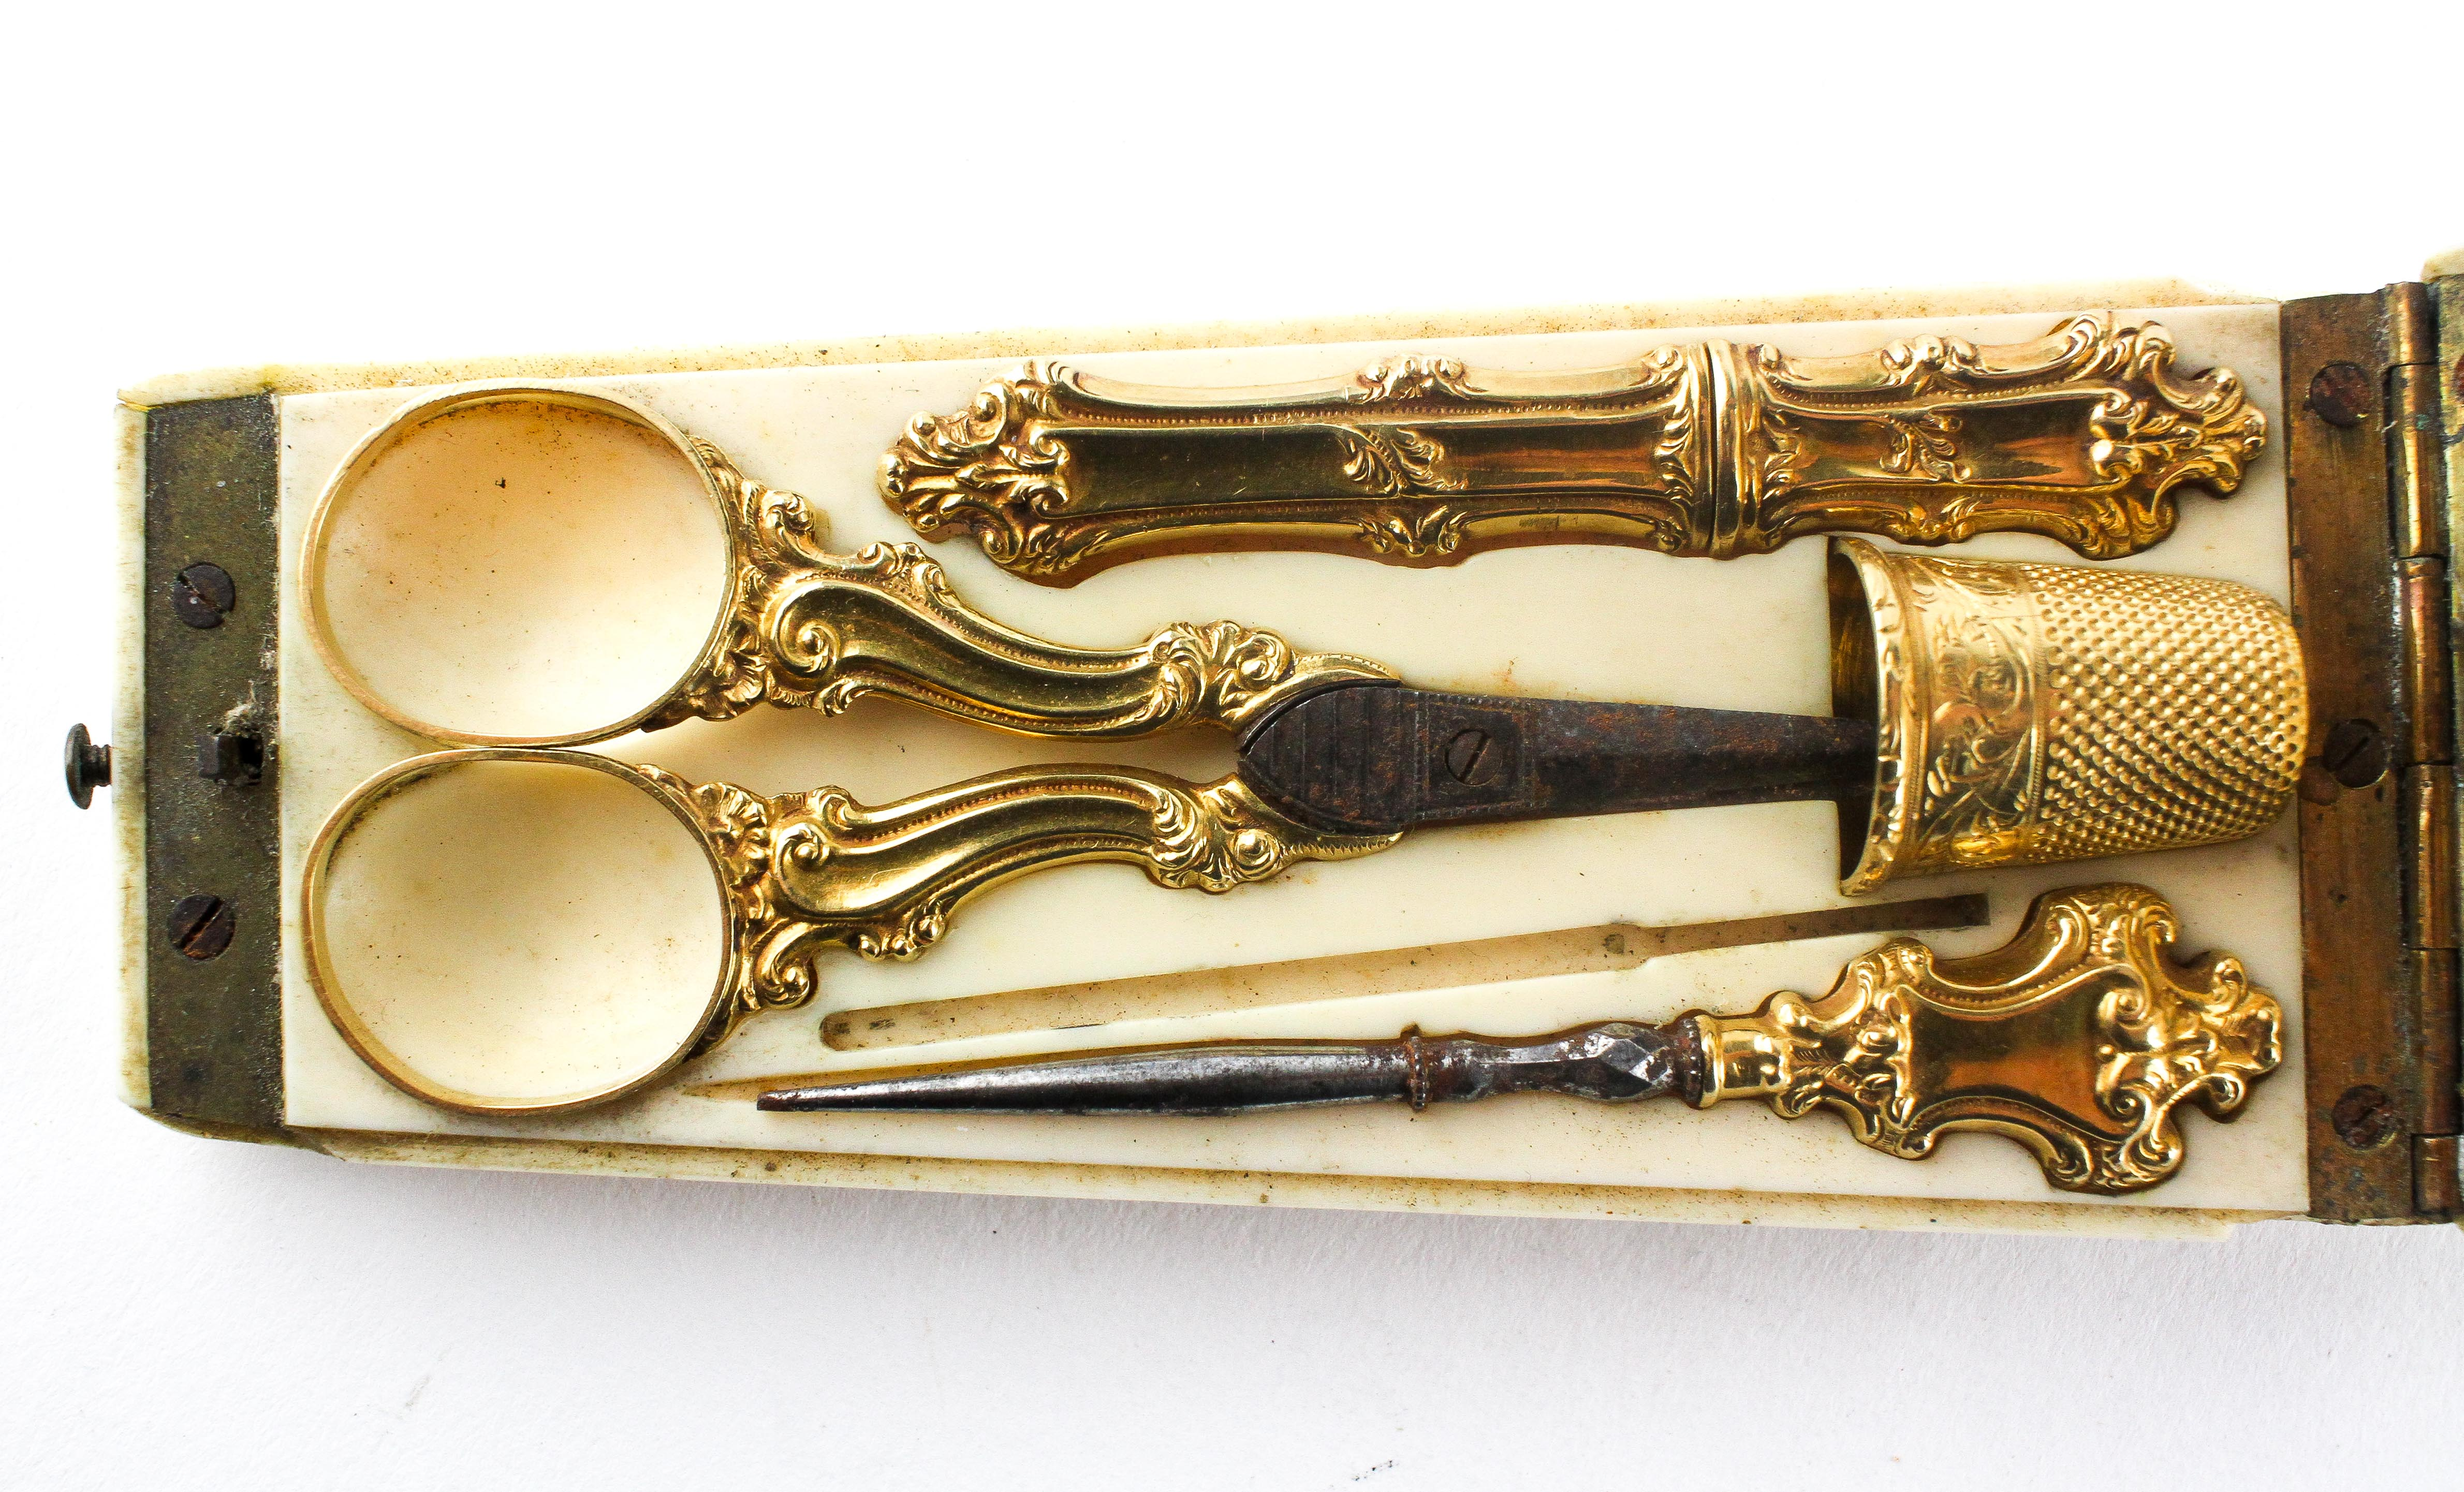 A 19th Century French 18ct gold mounted Etui set, comprising thimble, scissors, - Image 2 of 3